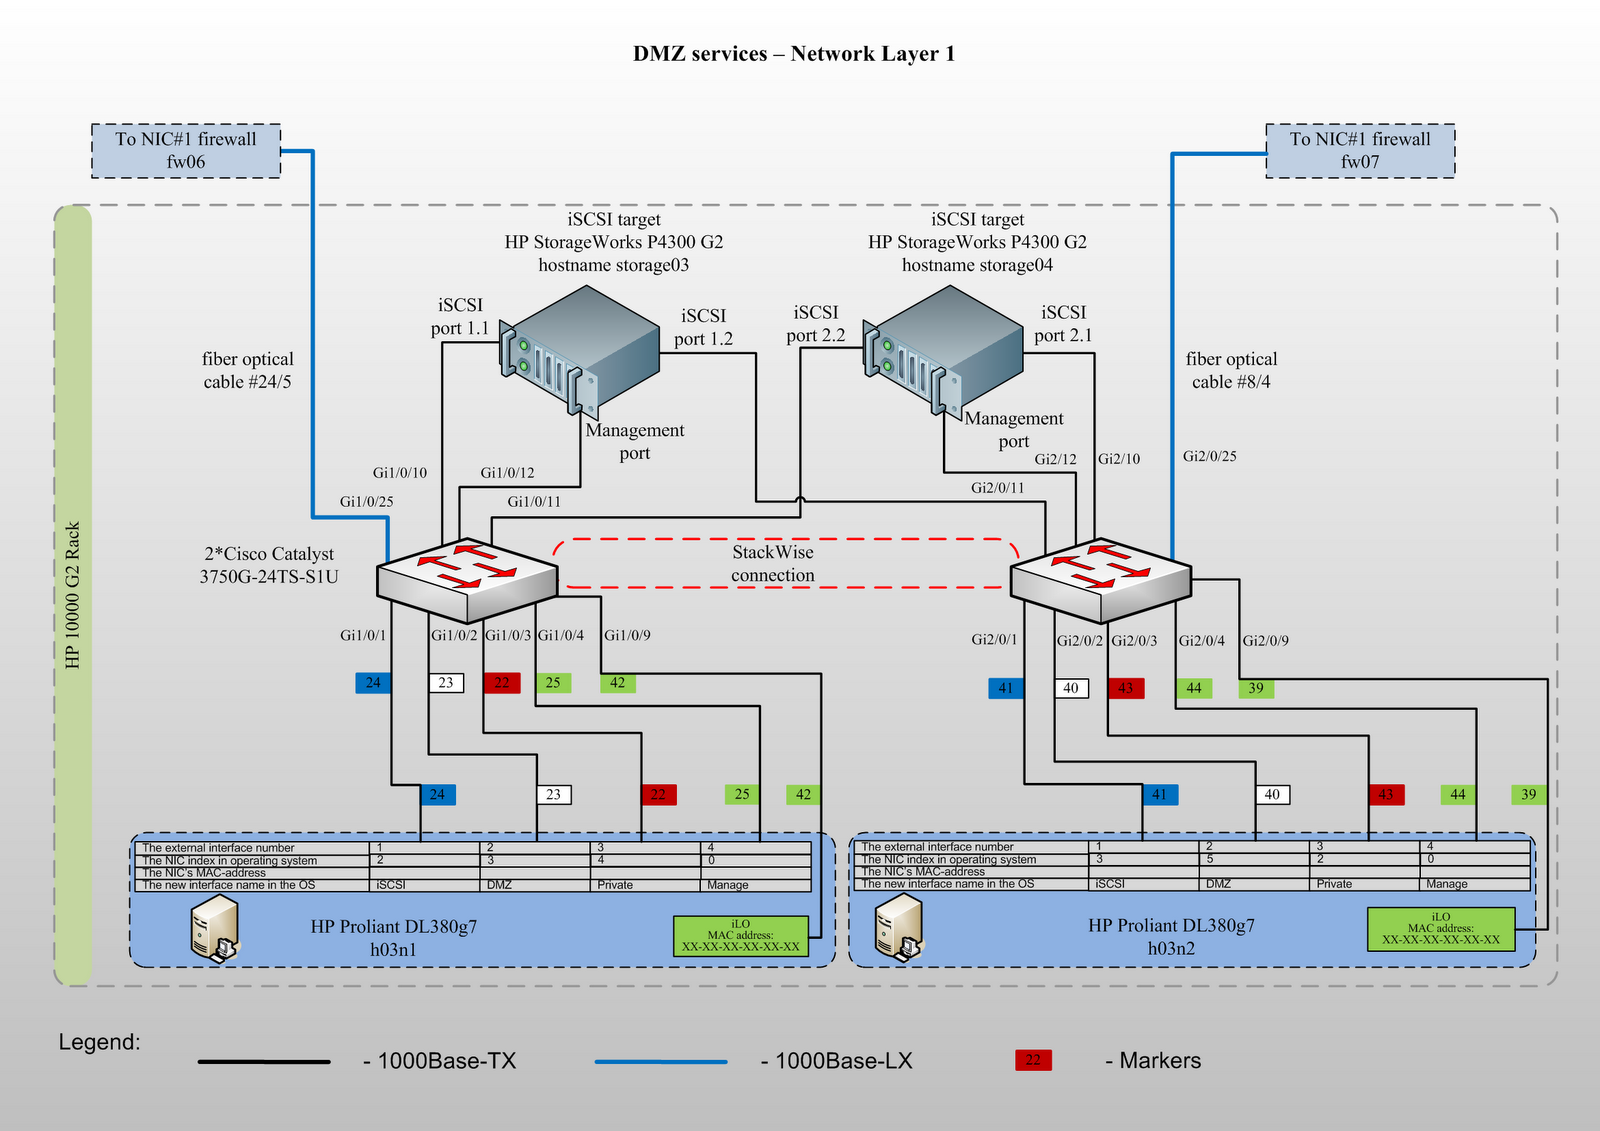 hyper v network diagram redarc solenoid wiring kreyda creating dmz infrastructure in ms environment